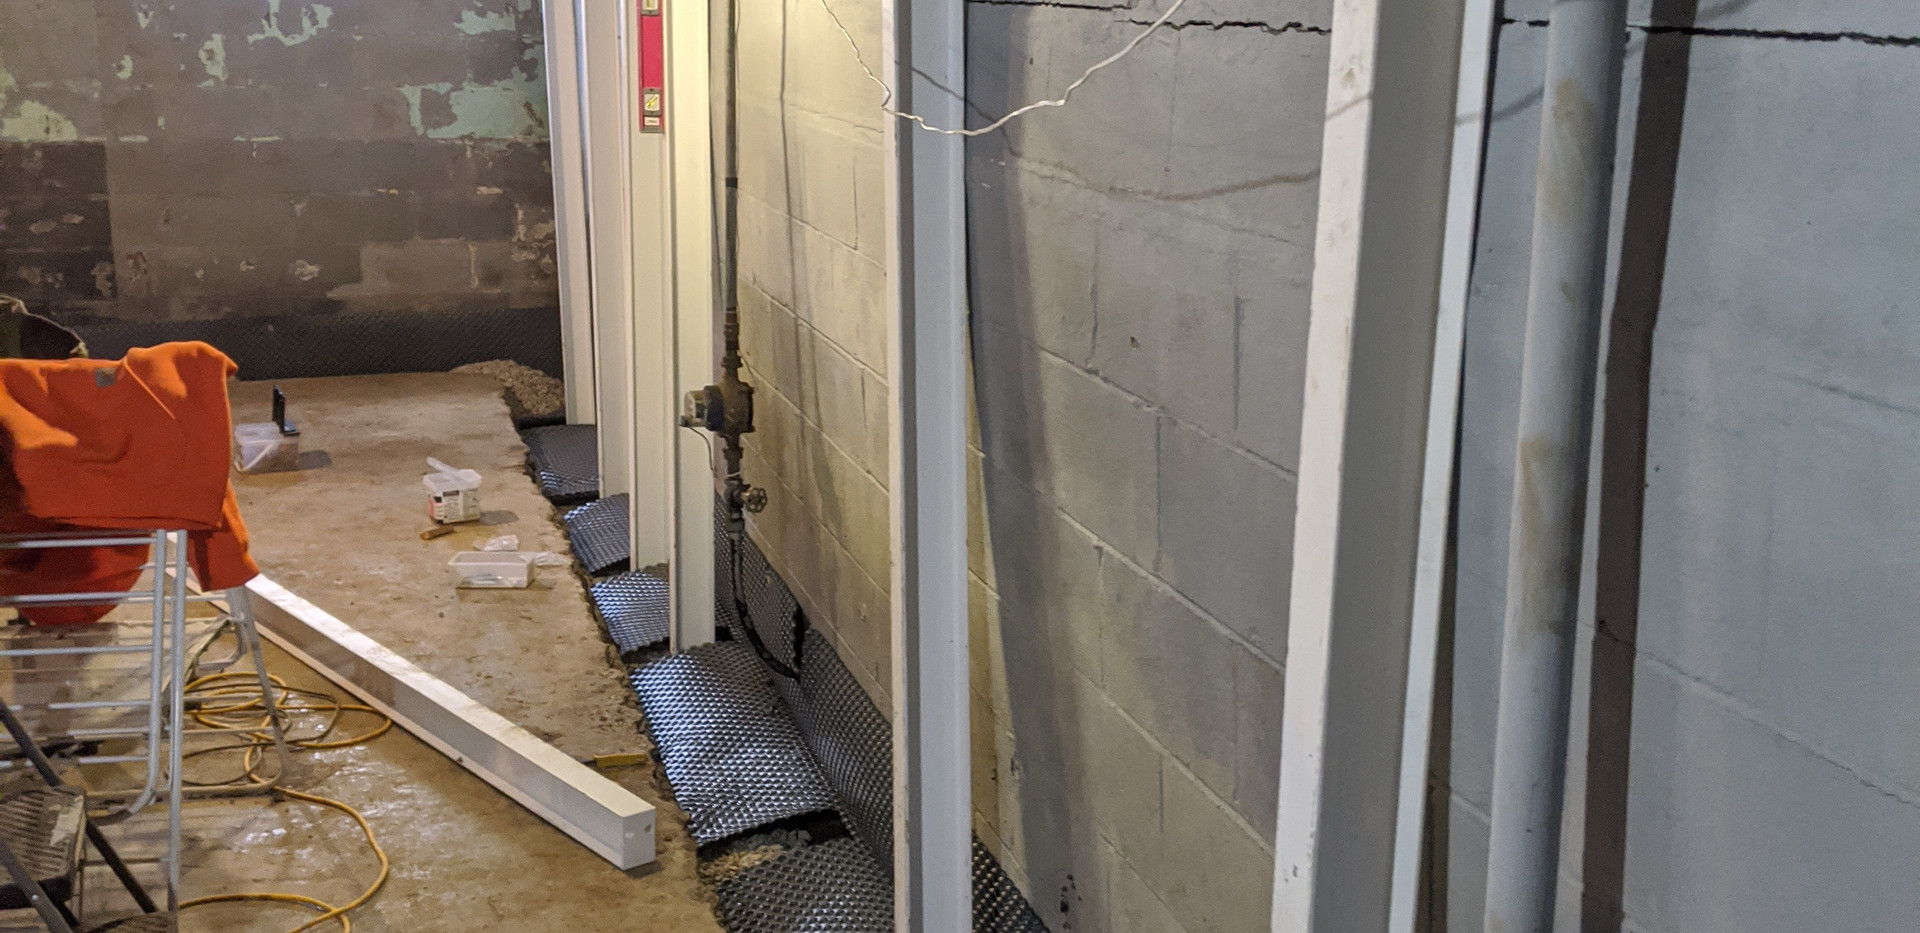 Basement waterproofing with installation of an interior drain tile system